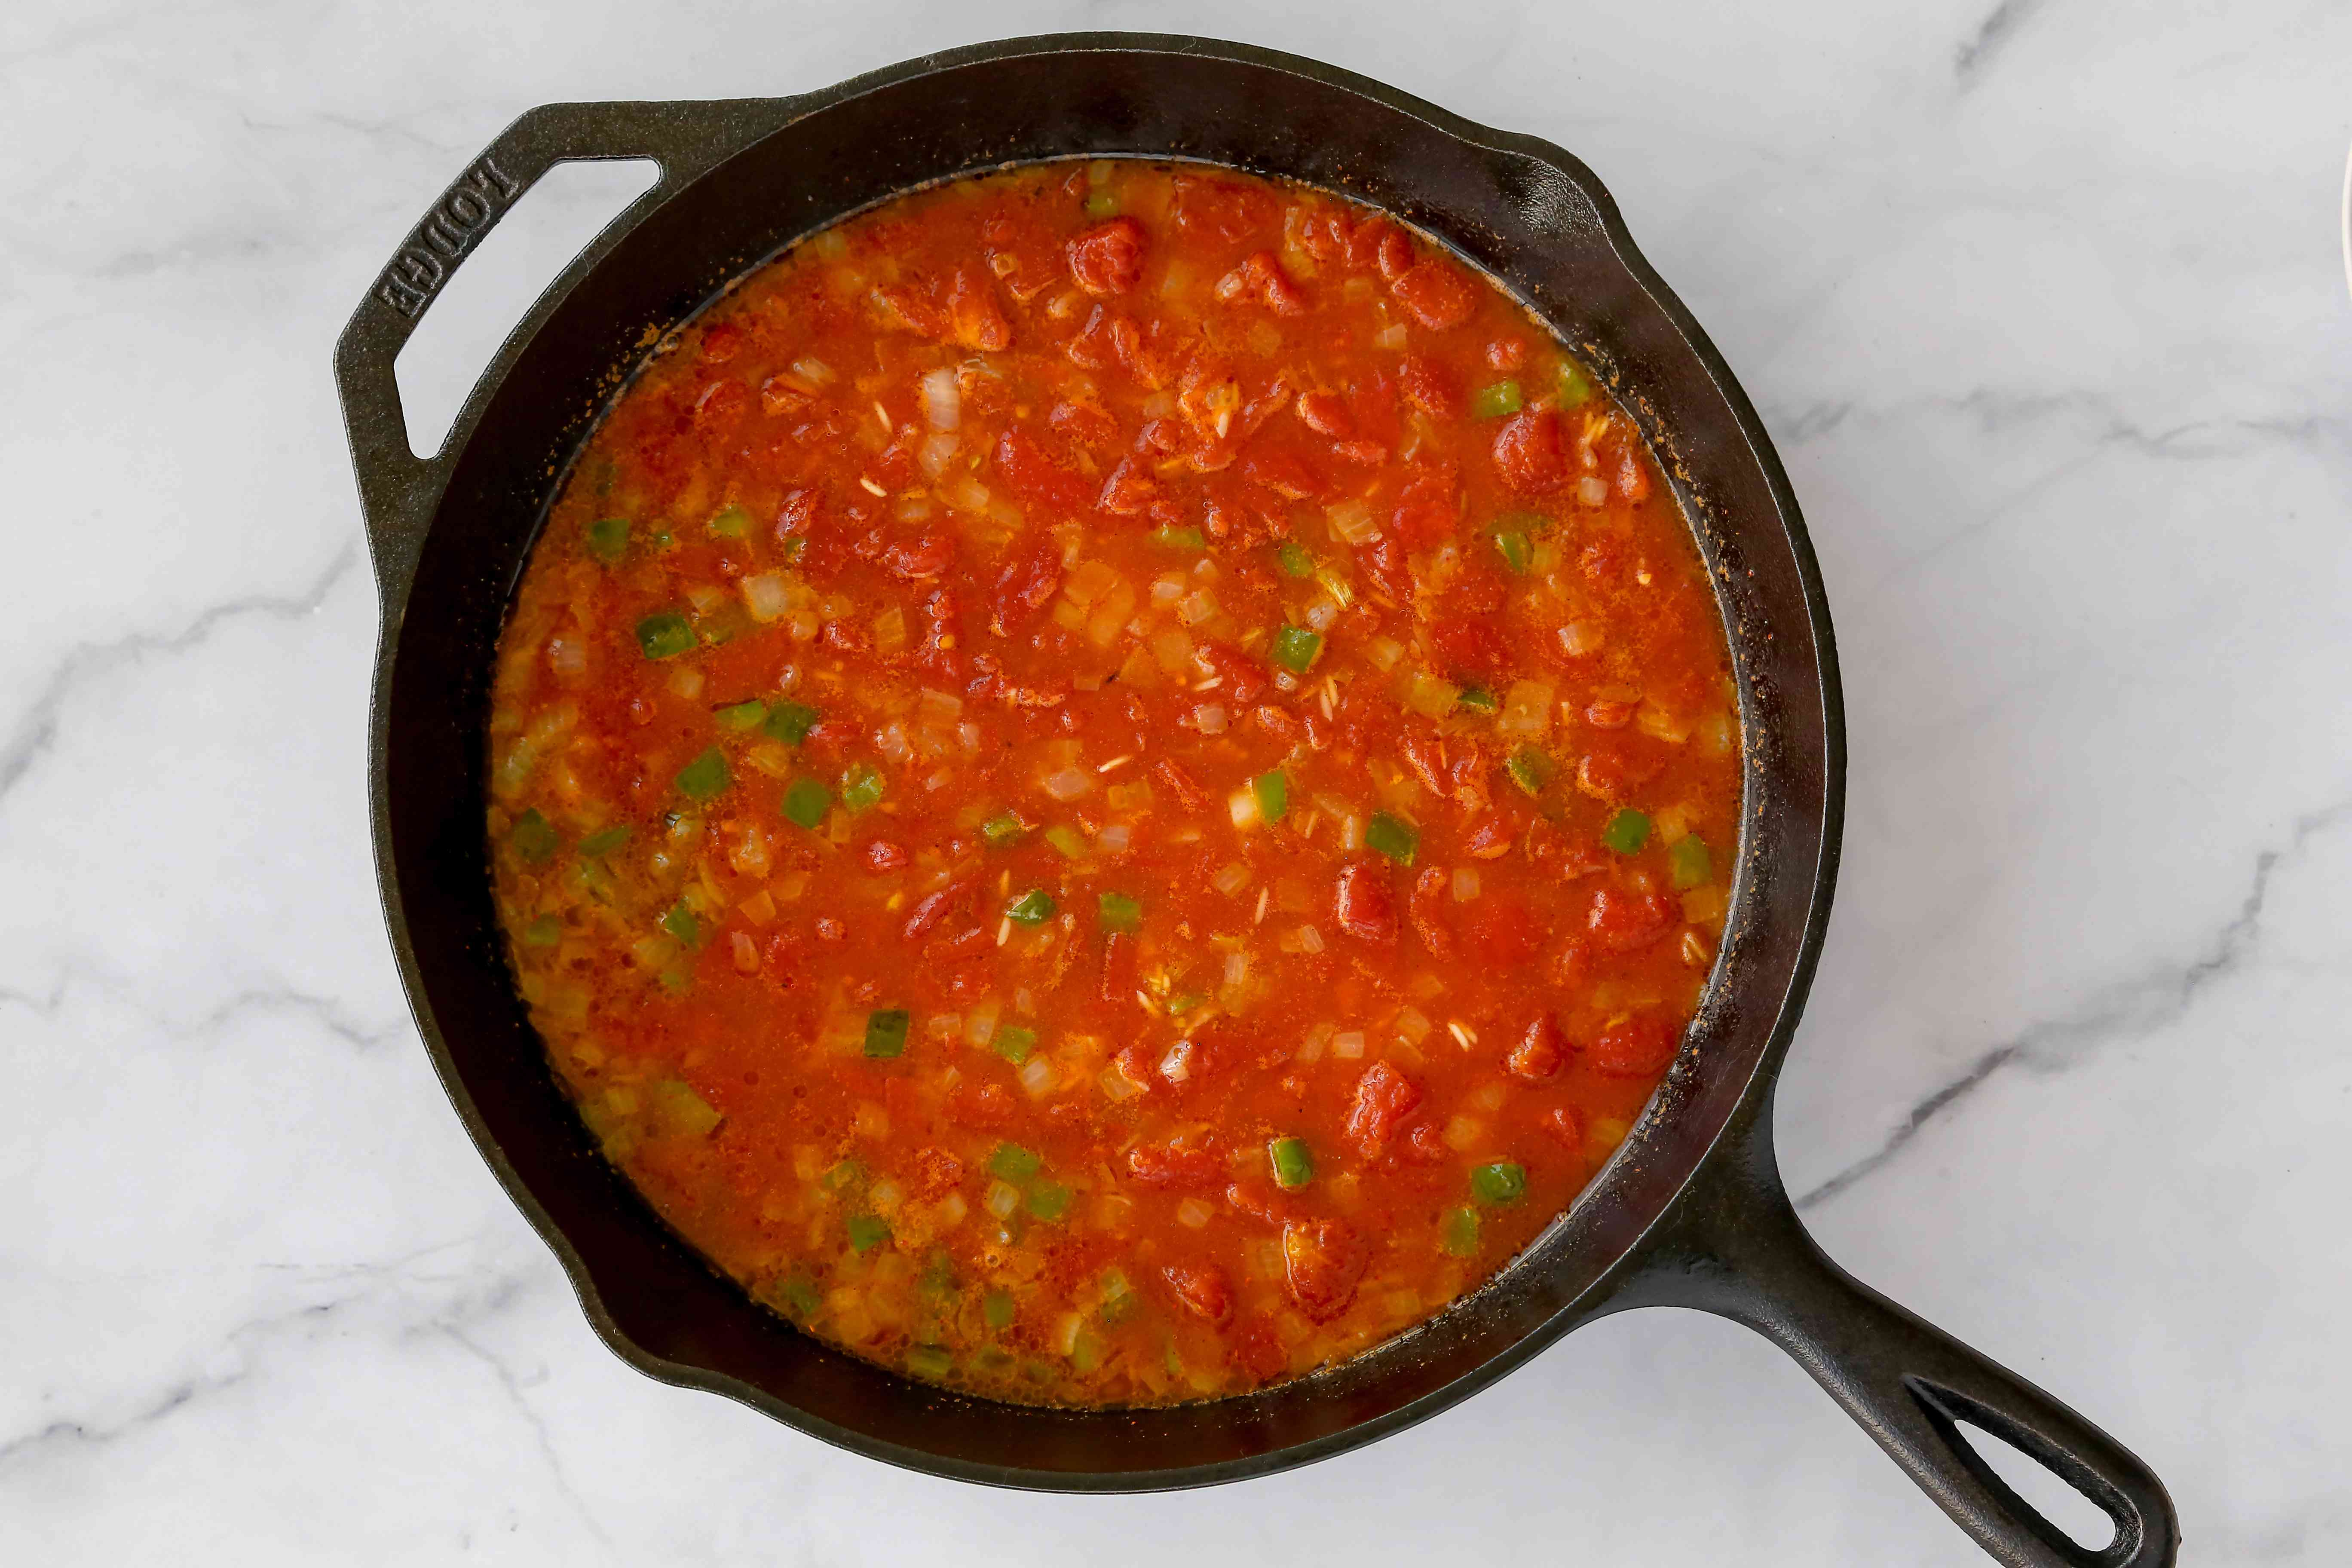 Add tomatoes, chili powder, cumin, salt, and beef broth to the rice mixture in the skillet